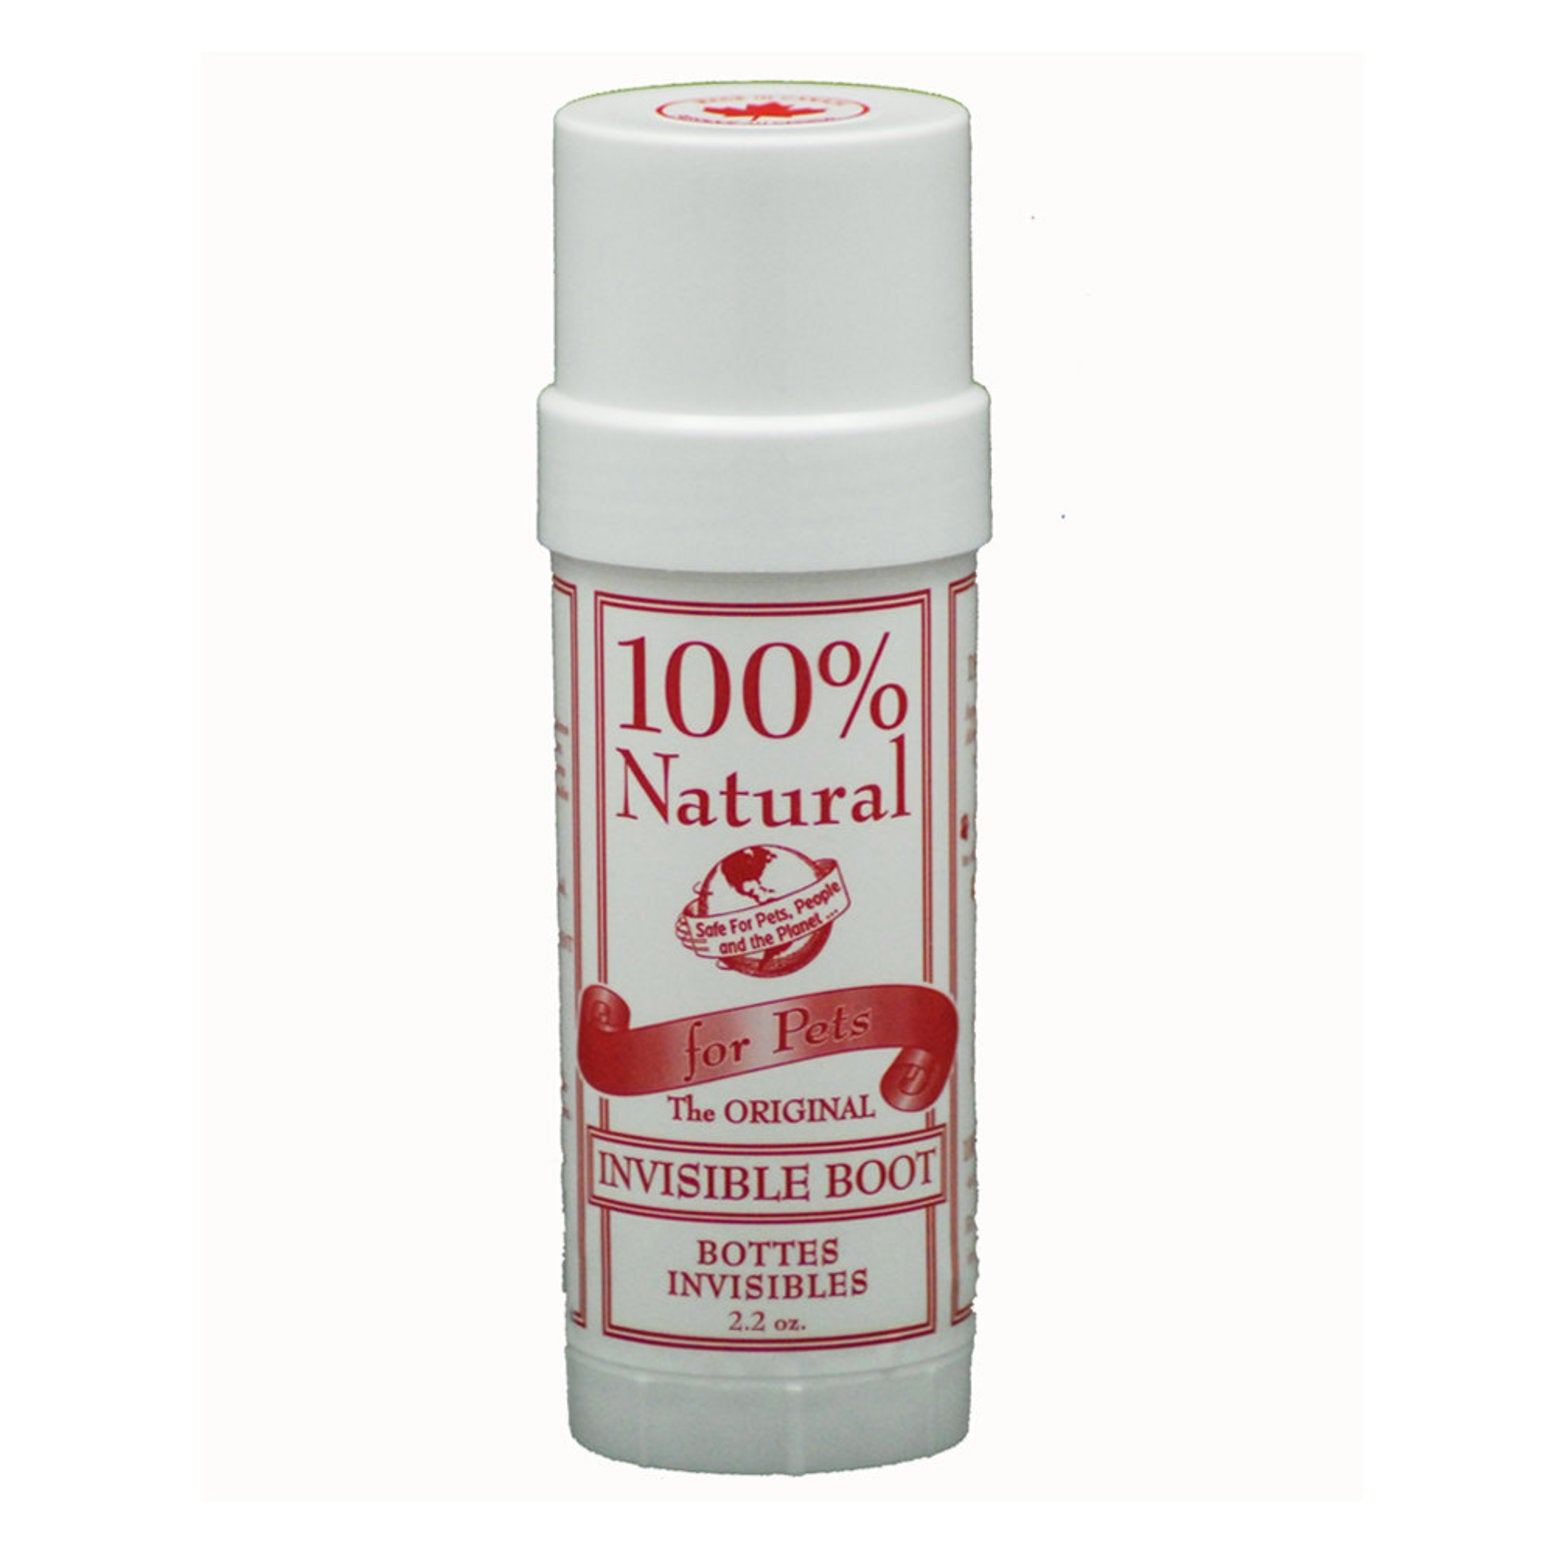 100% Natural Invisible Boot Paw - Stick (2.2oz)